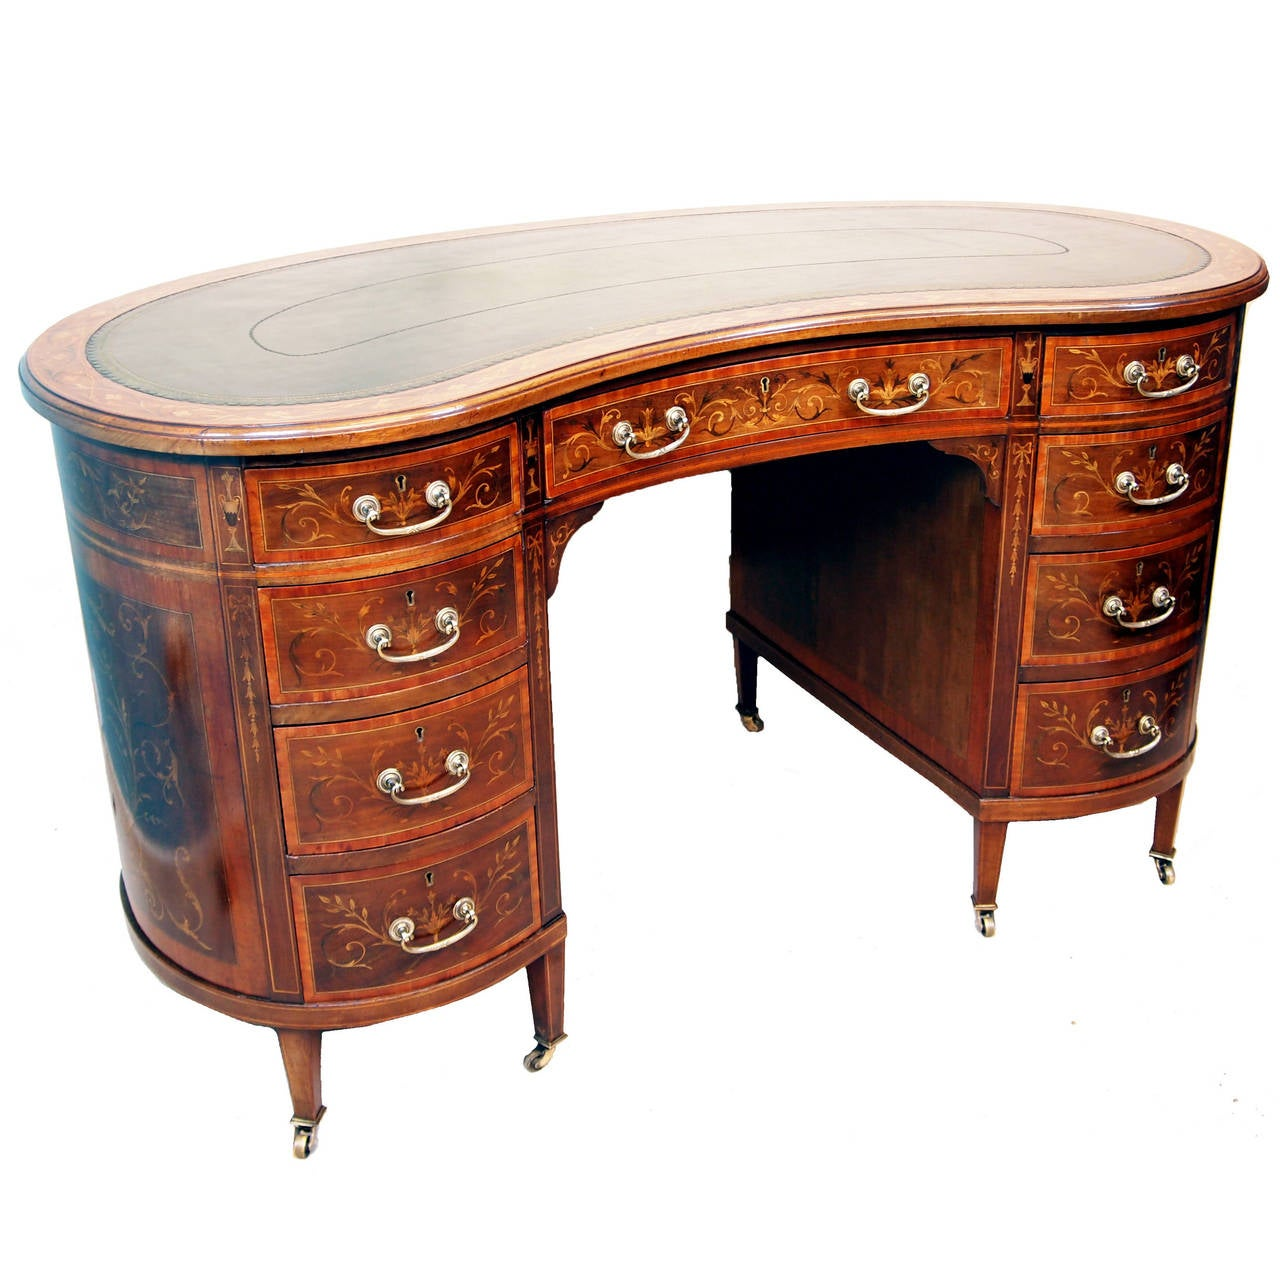 Antique Mahogany Kidney Shaped Desk For Sale - Antique Mahogany Kidney Shaped Desk At 1stdibs